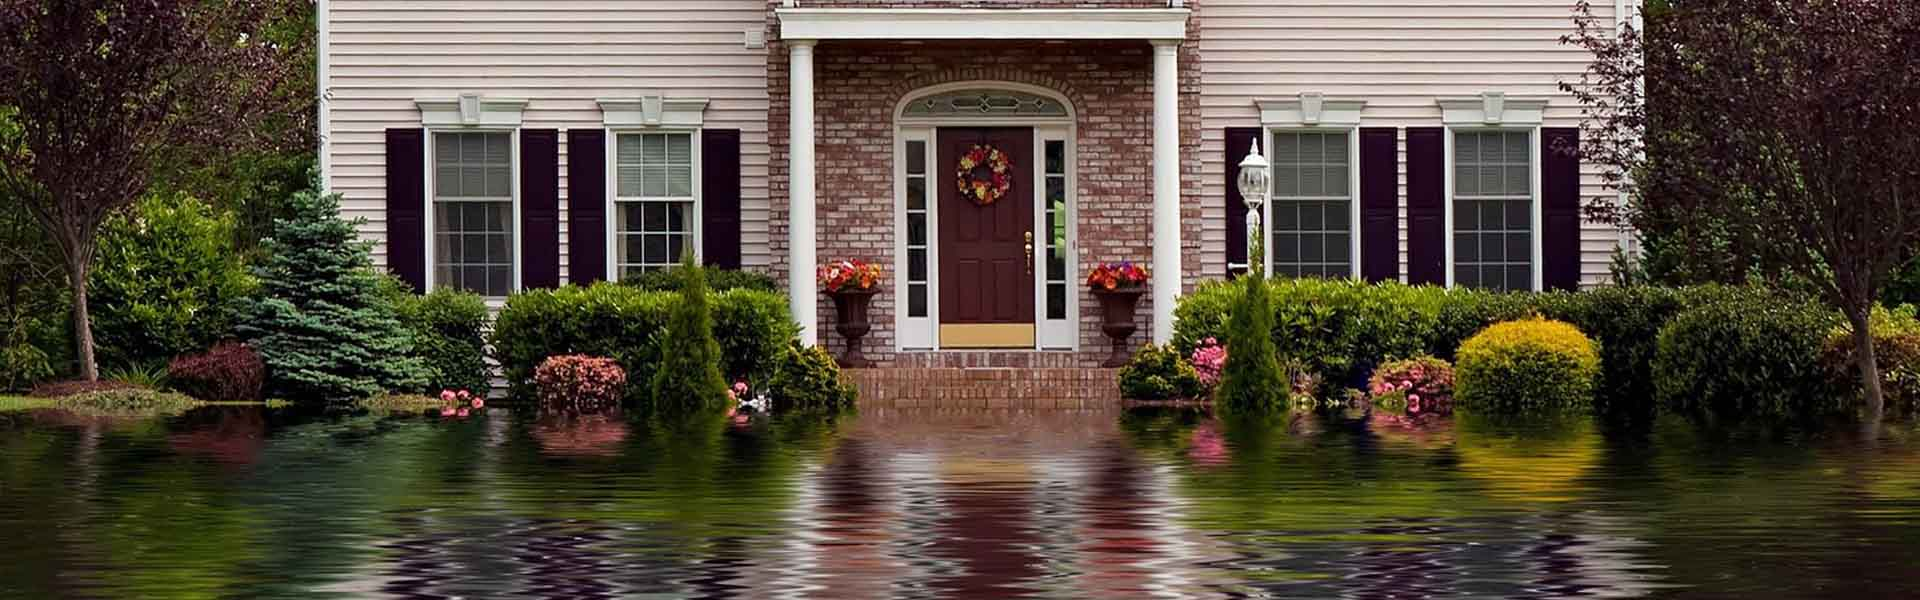 Water-Removal-Flooded-Home